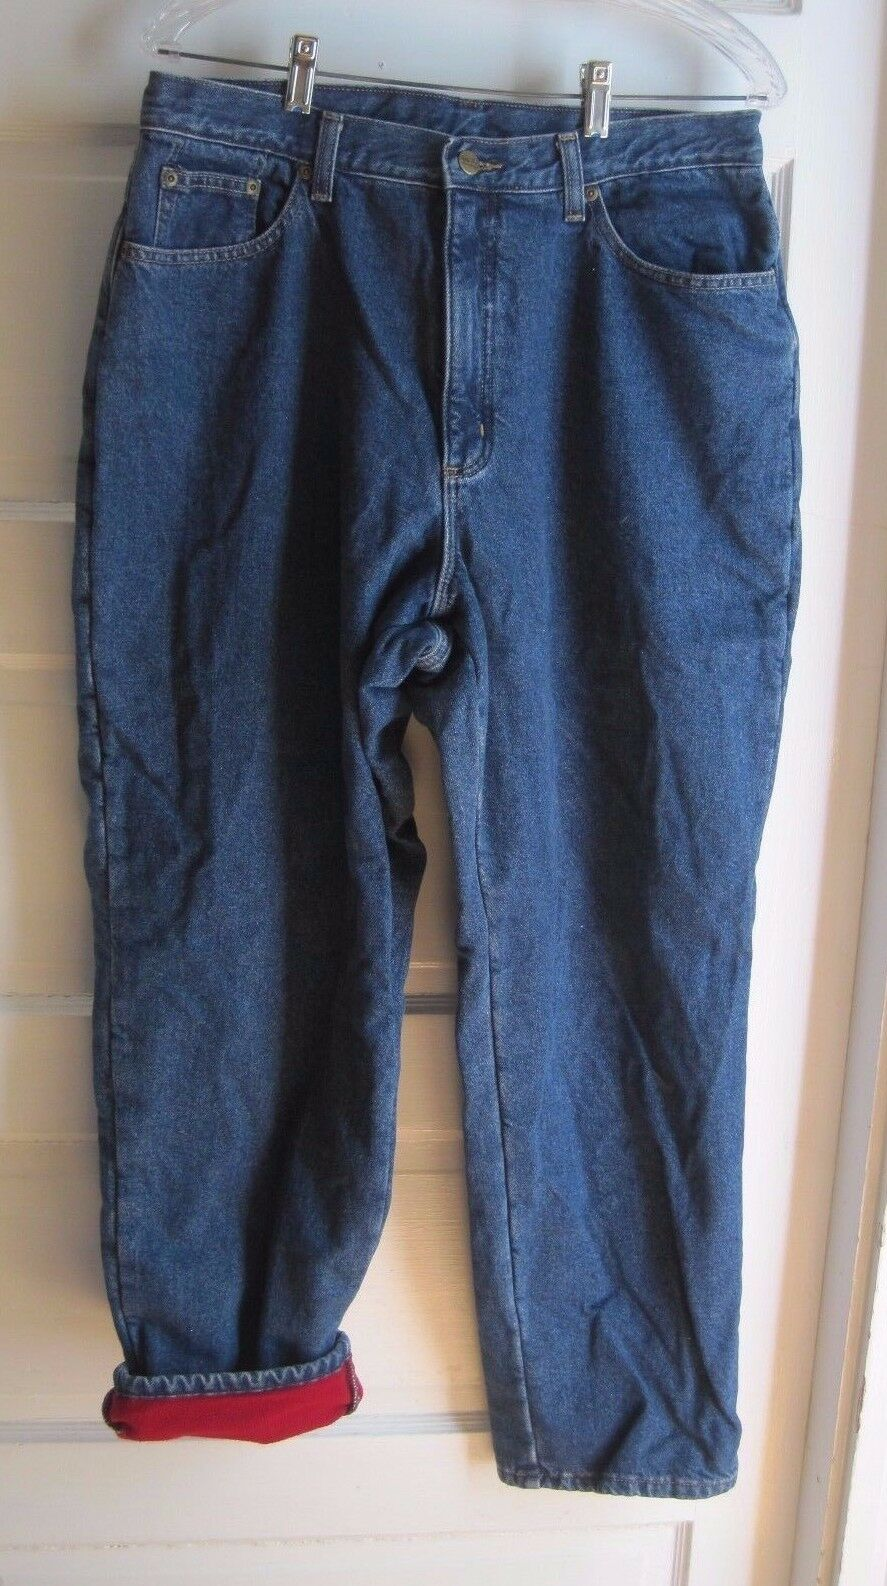 LL Bean Double L Relaxed Fit Red Fleece Lined Denim bluee Jeans womens size 16 R